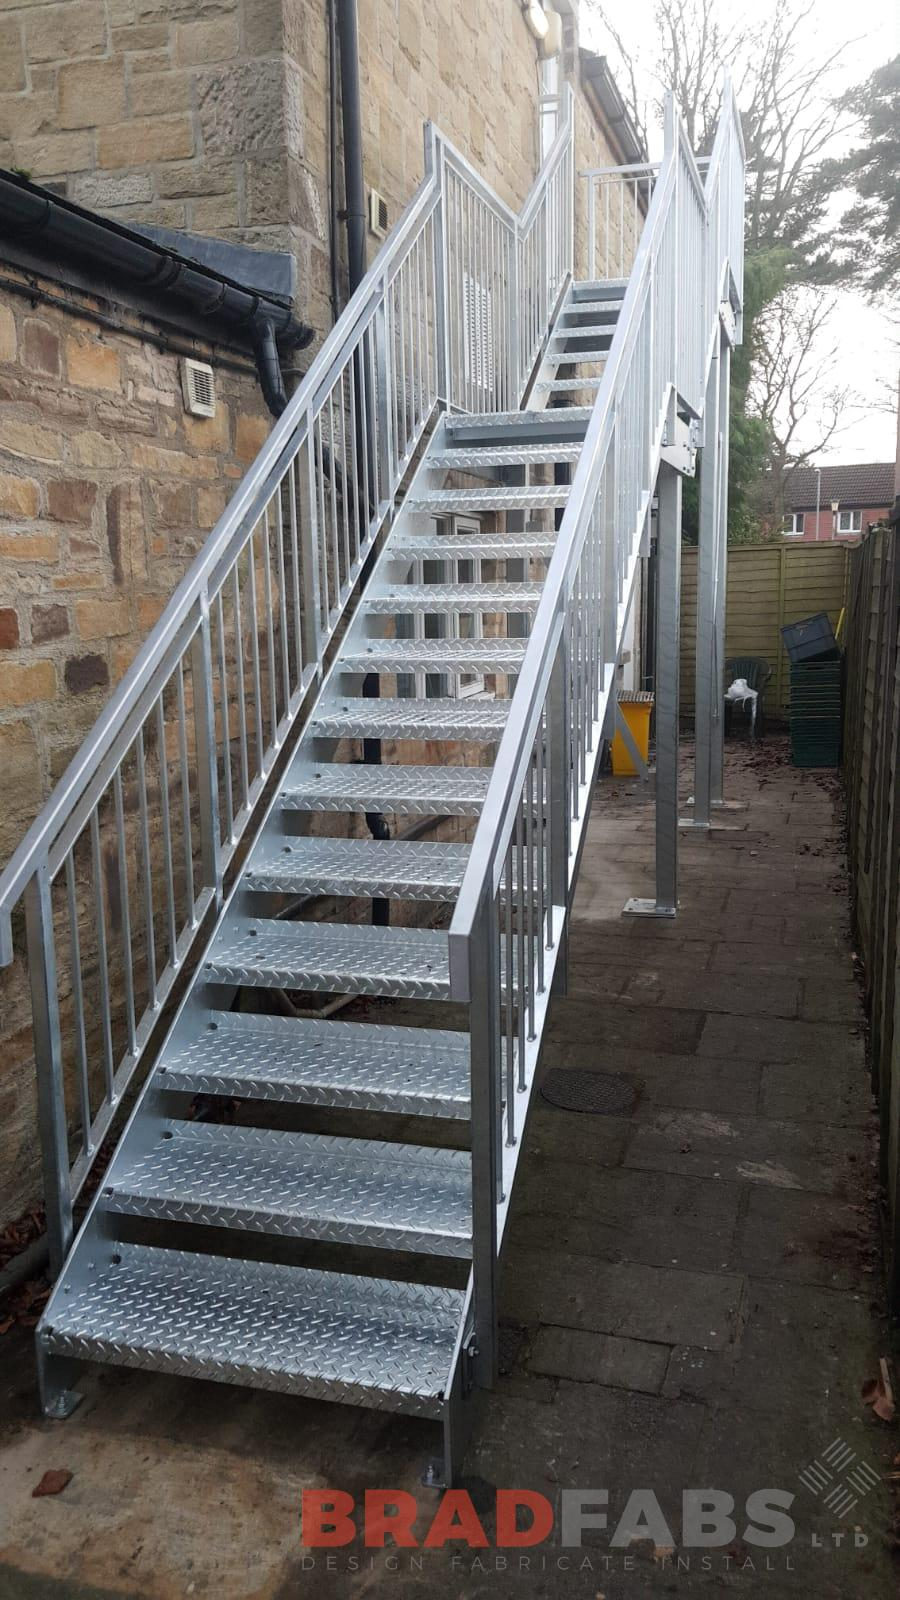 Mild steel, Galvanised, Powder Coated, External Fire Escape, Durbar Treads, Staircase